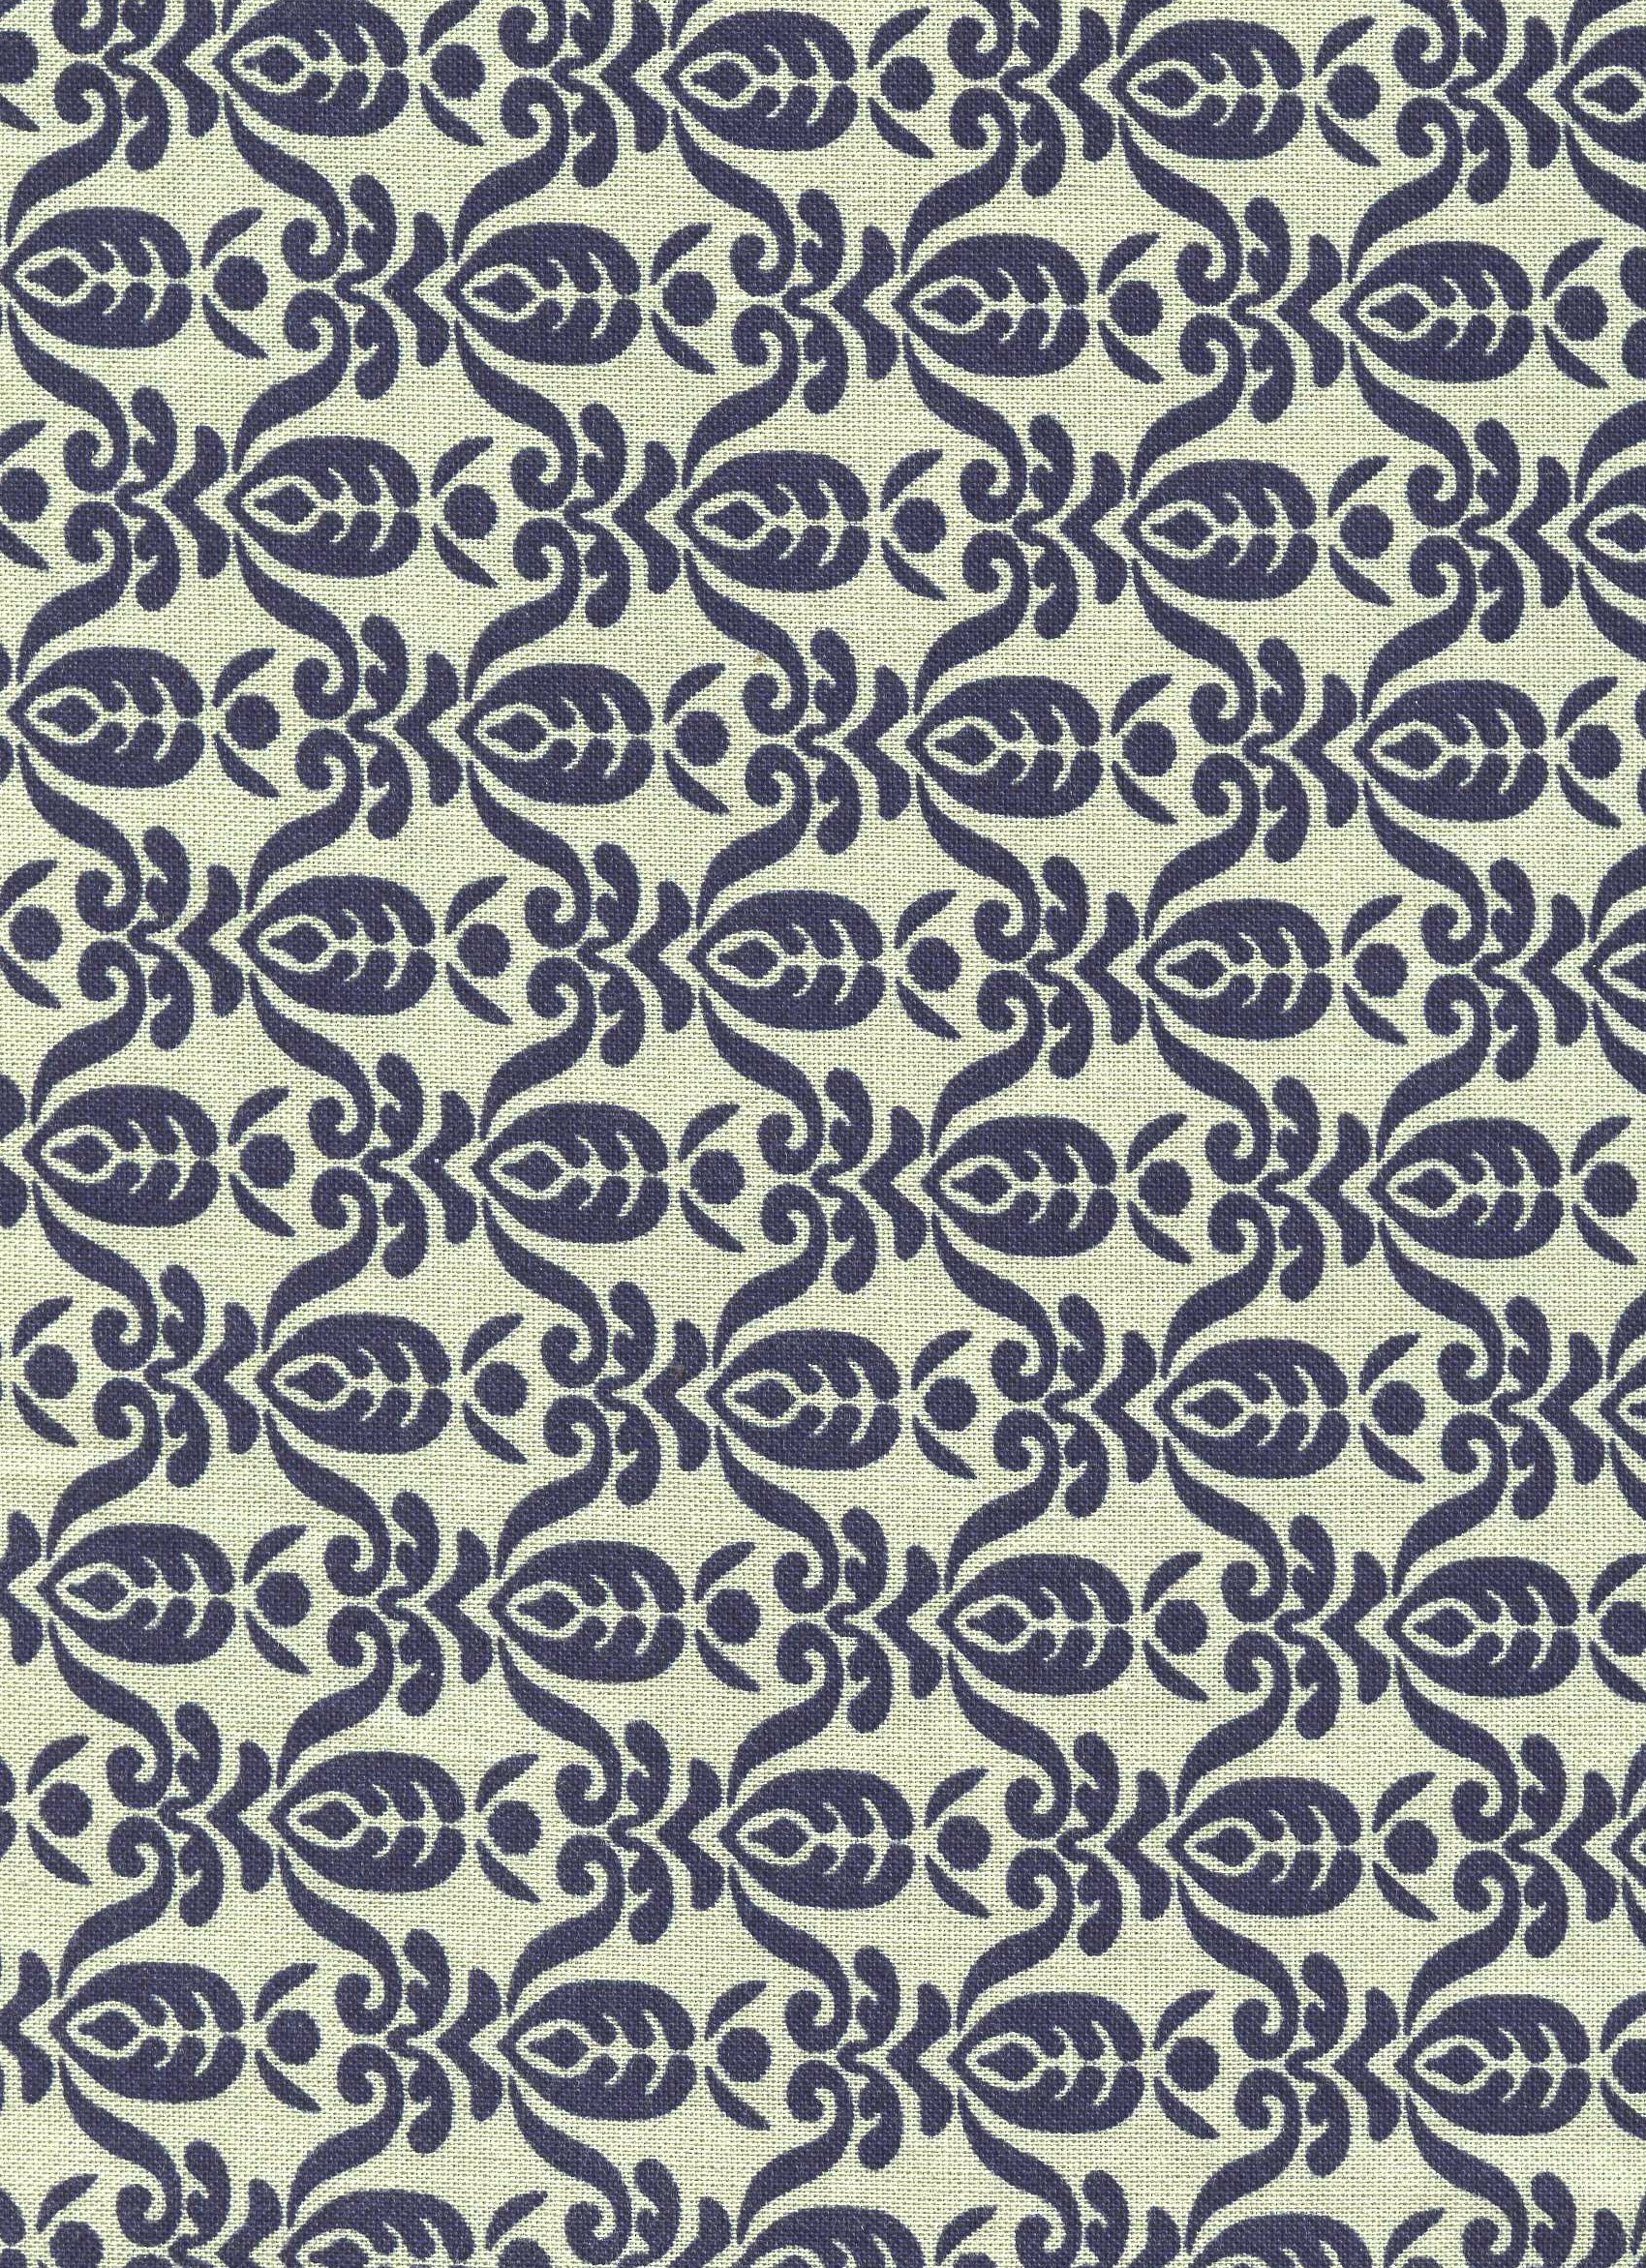 Farmer Fancy- Light Green with Navy Blue Design